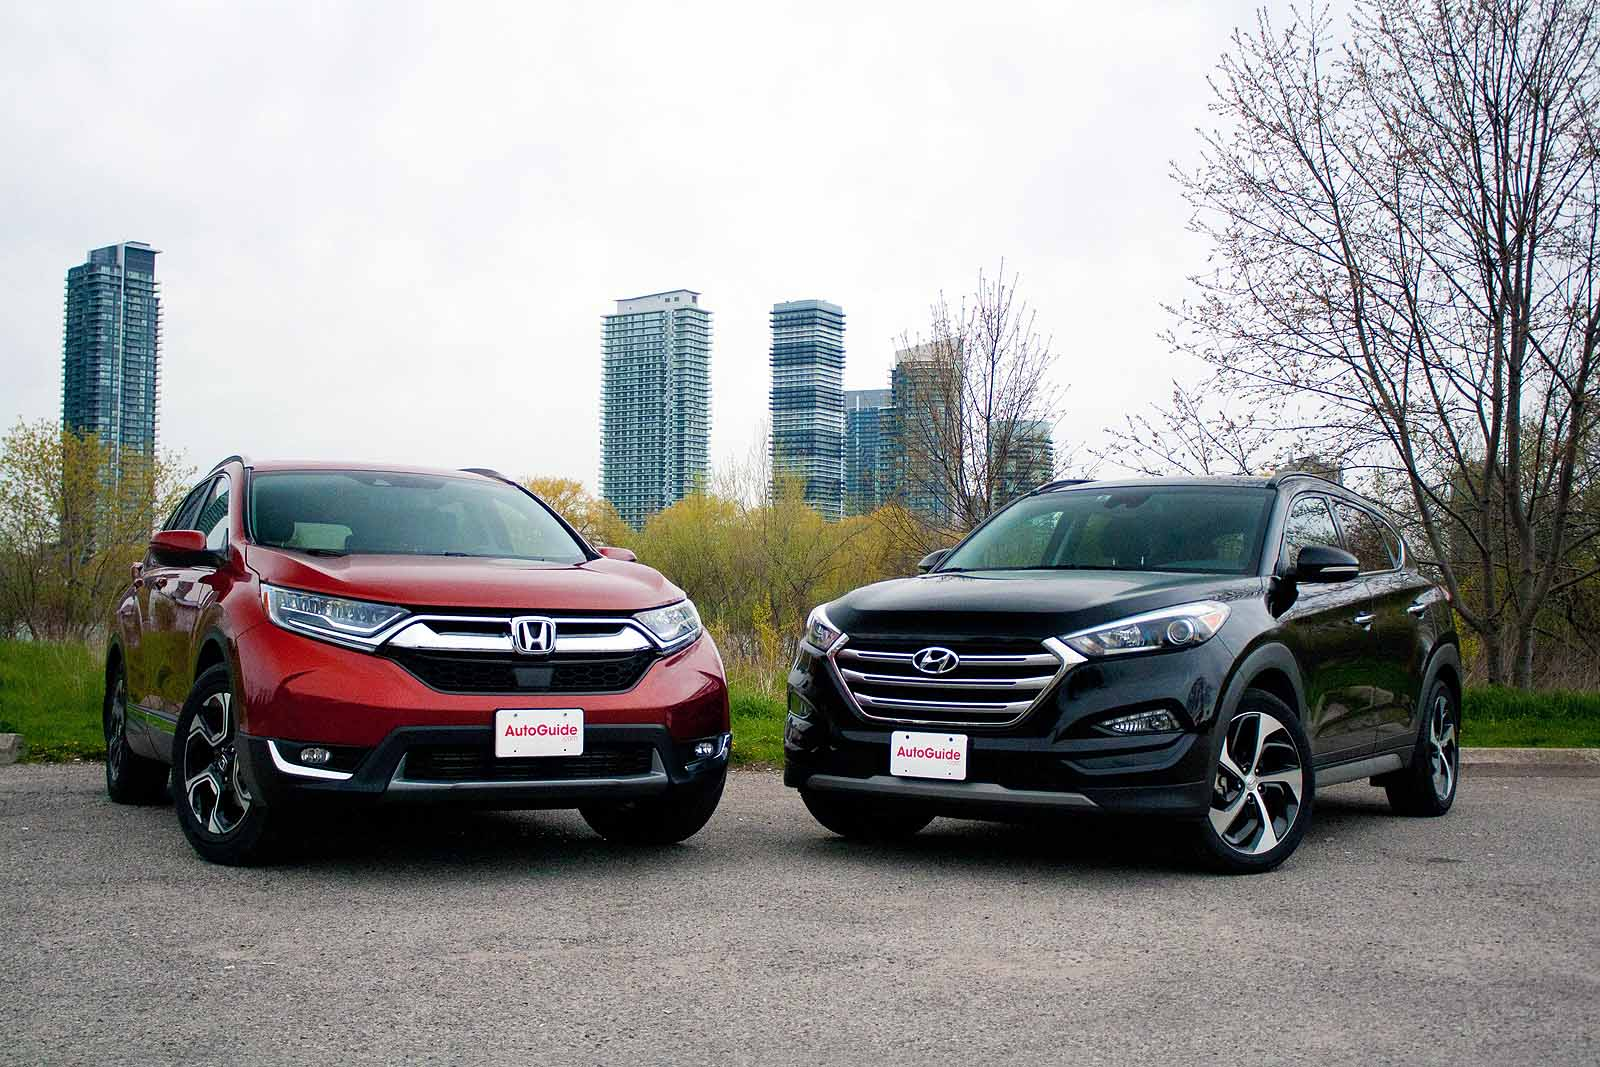 2017 honda cr v vs hyundai tucson comparison